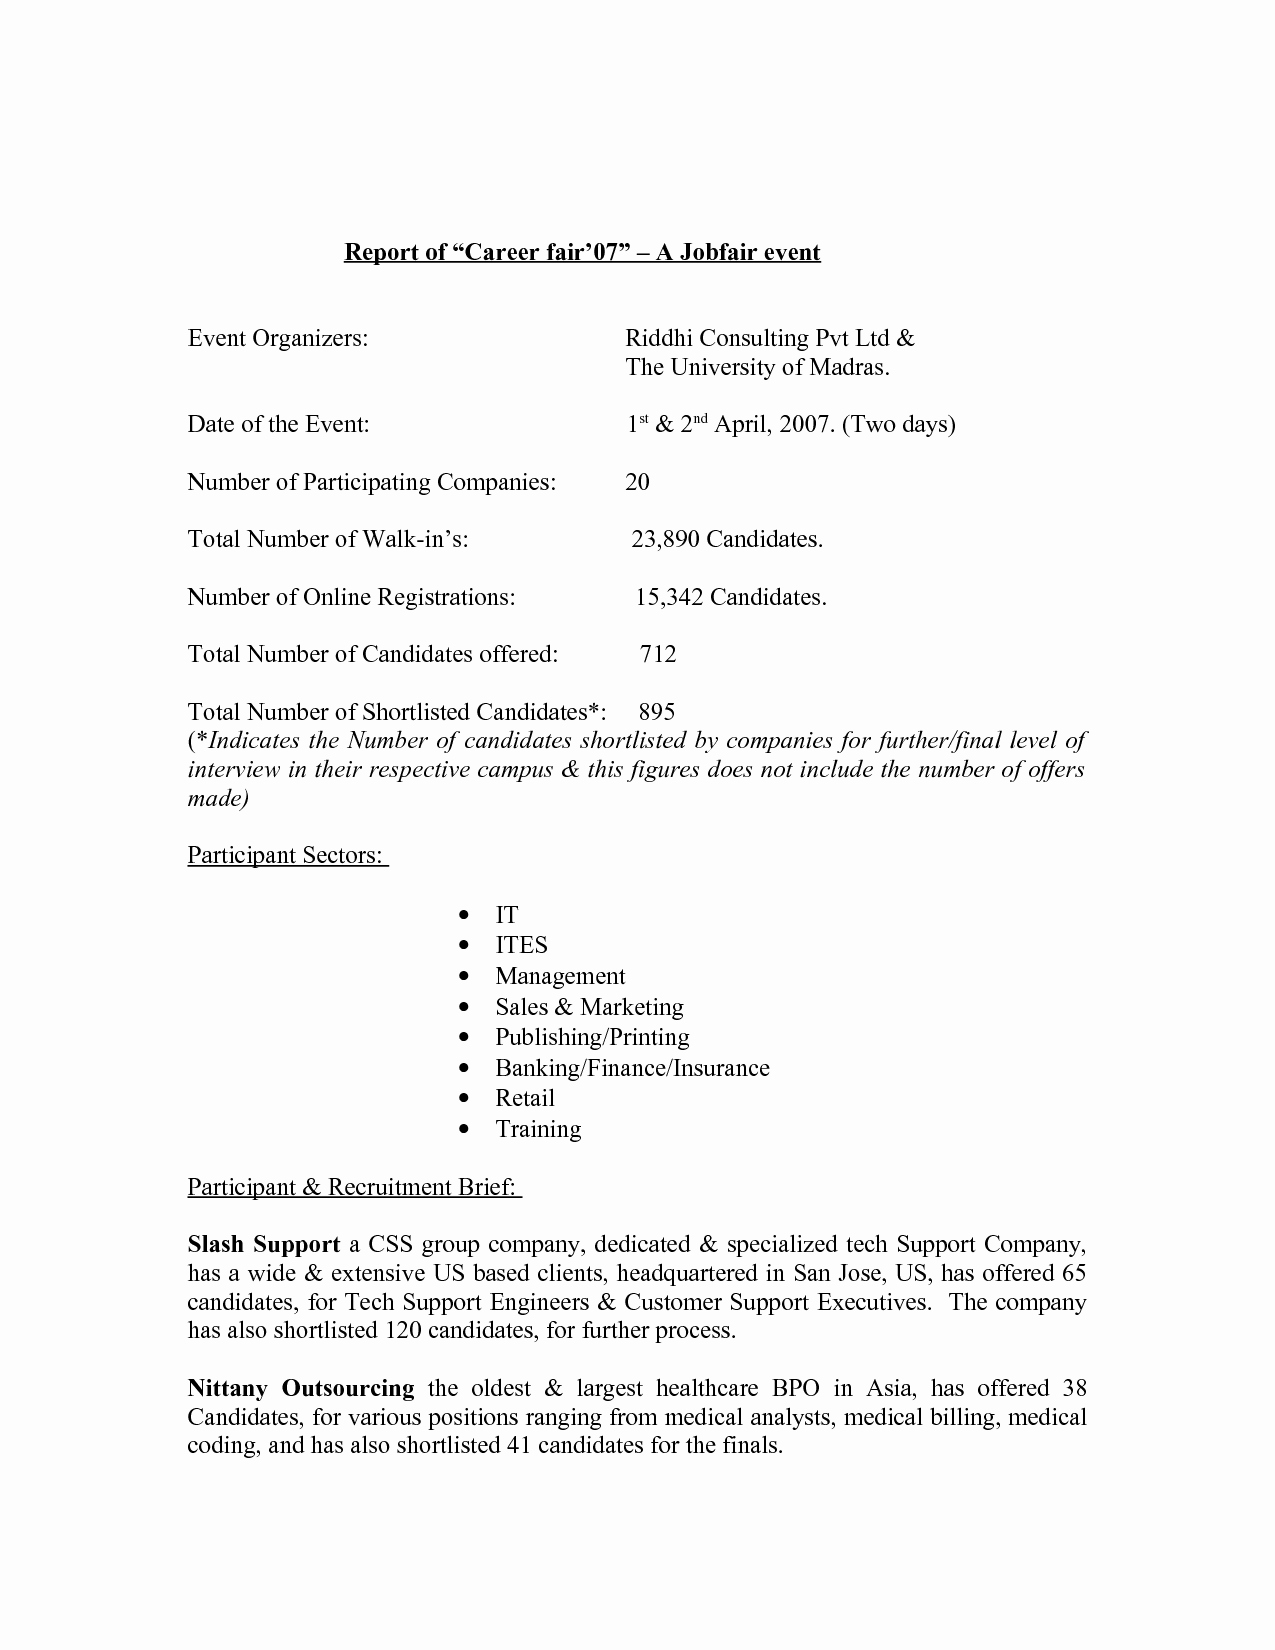 Simple Resume format for Freshers Elegant Resume format for Freshers Free Download Resume format for Freshers Free Download Resume format